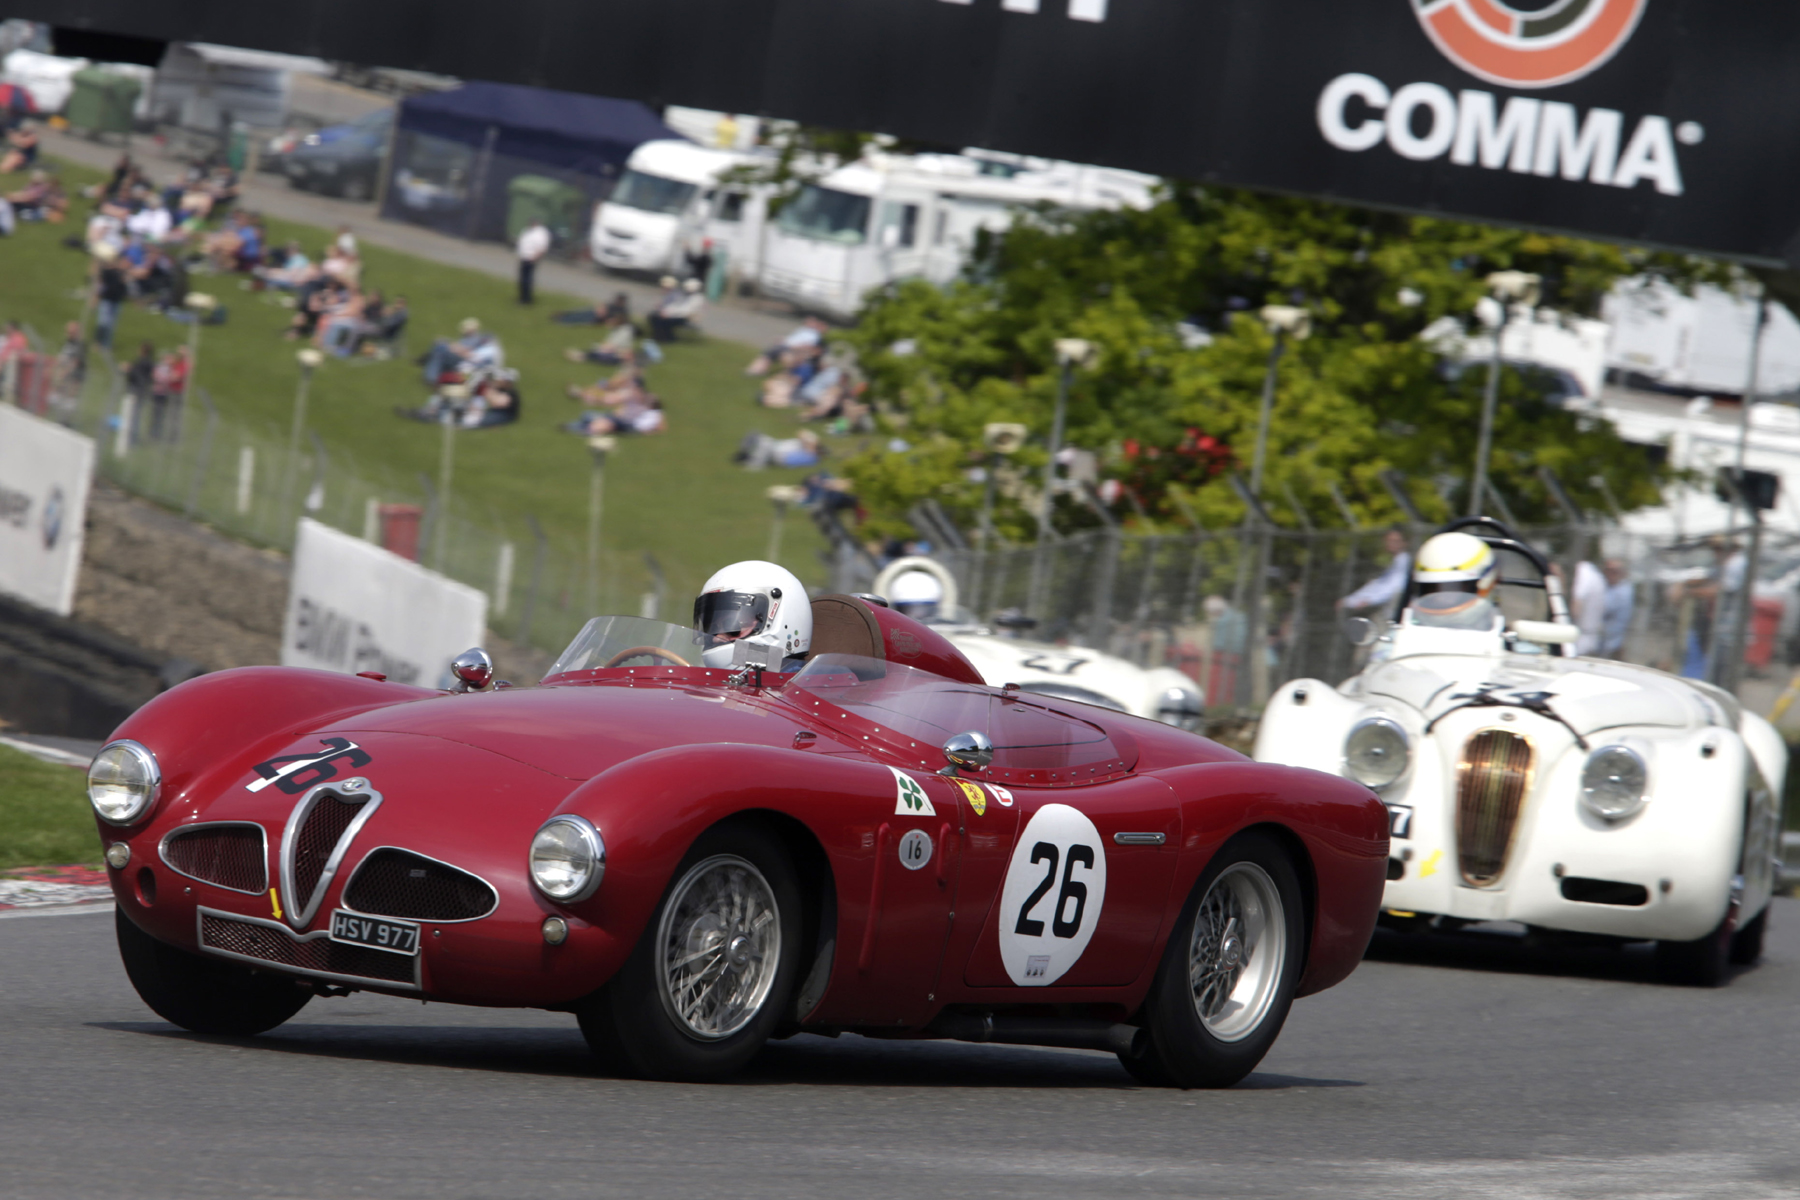 Christopher Mann's gorgeous Alfa Romeo Disco Volante rounds Druids chased by Christopher Scholey (XK120) and Nigel Grice (Austin Healey 100M)                                                       Photo - Gary Hawkins